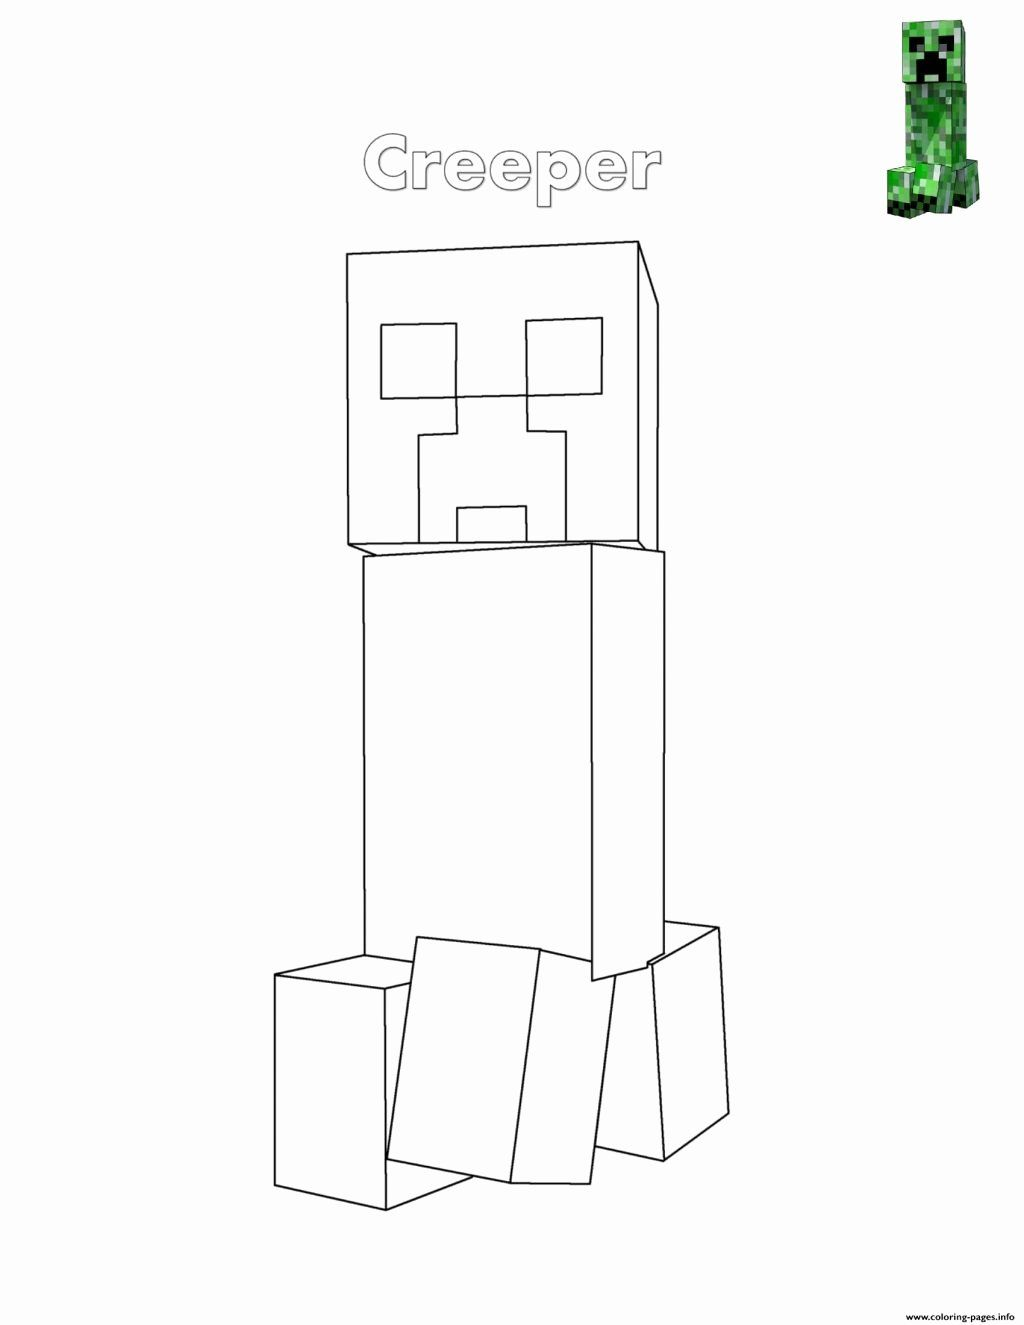 Drawing Book For Kids Online New Coloring Pages Creeper Coloring Page Princess Baby Pages In 2020 Minecraft Coloring Pages Creeper Minecraft Coloring Pages